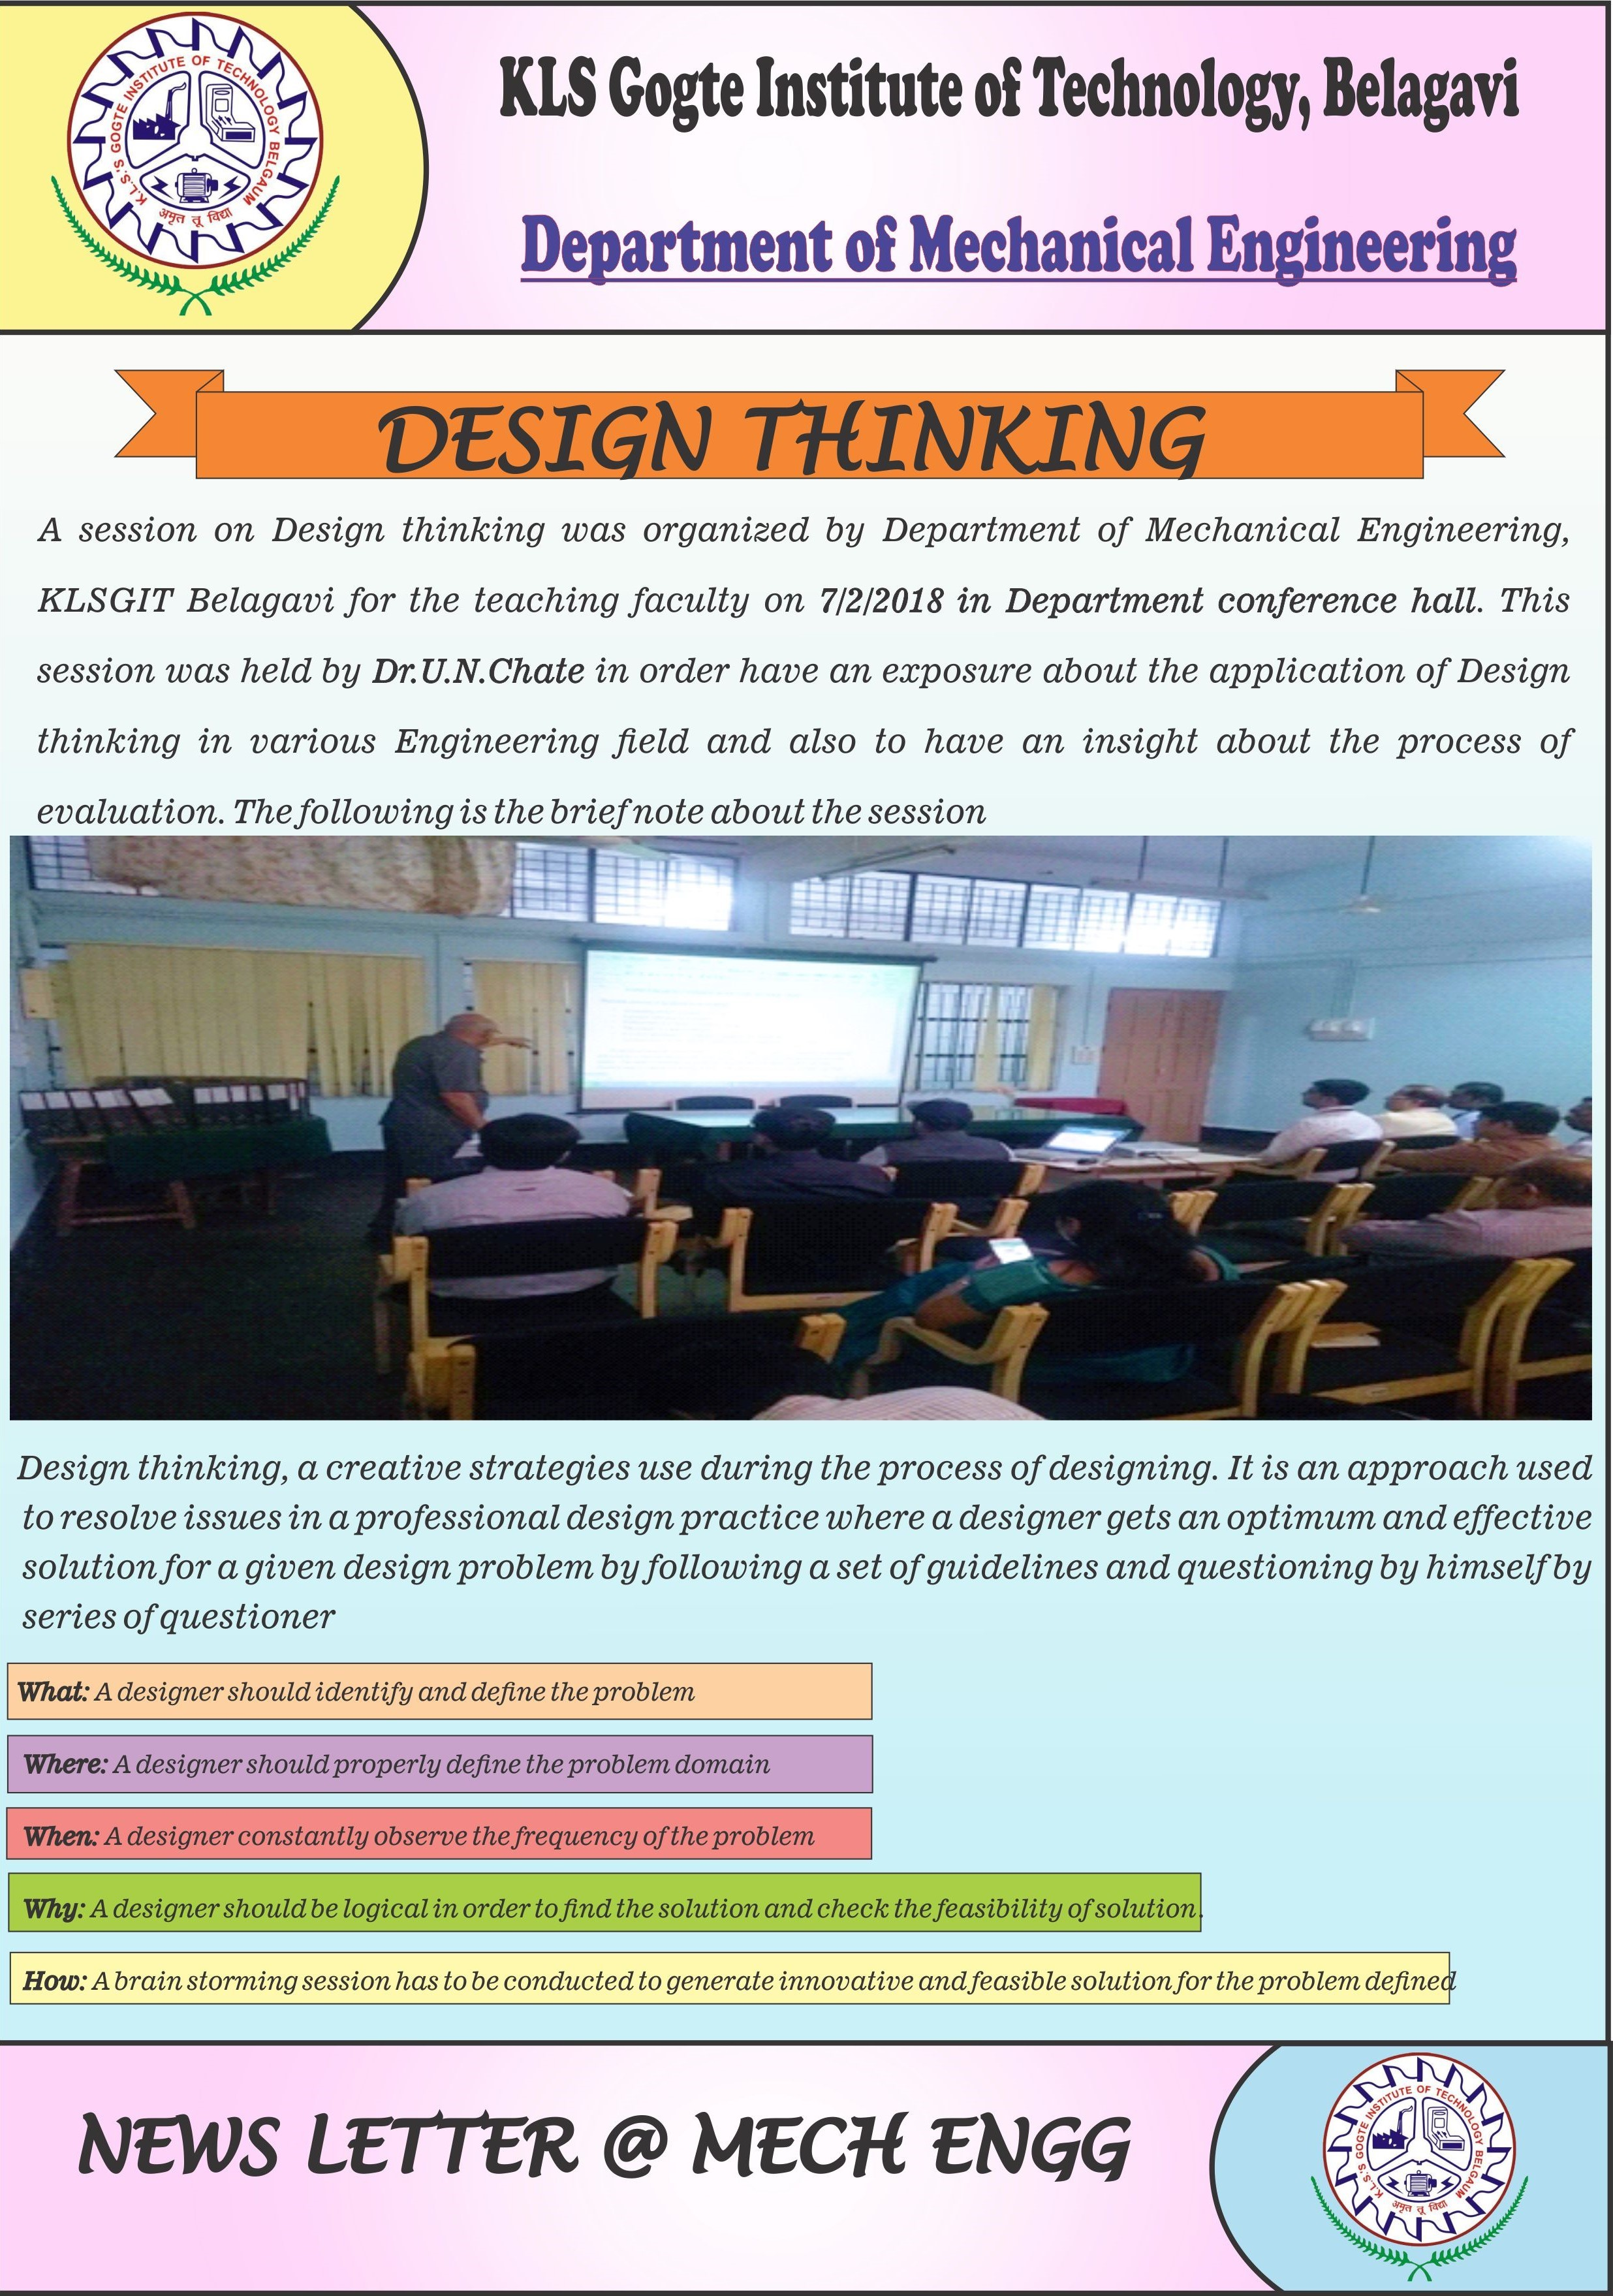 News Letters Feb 2018 Kls Gogte Institute Of Technology